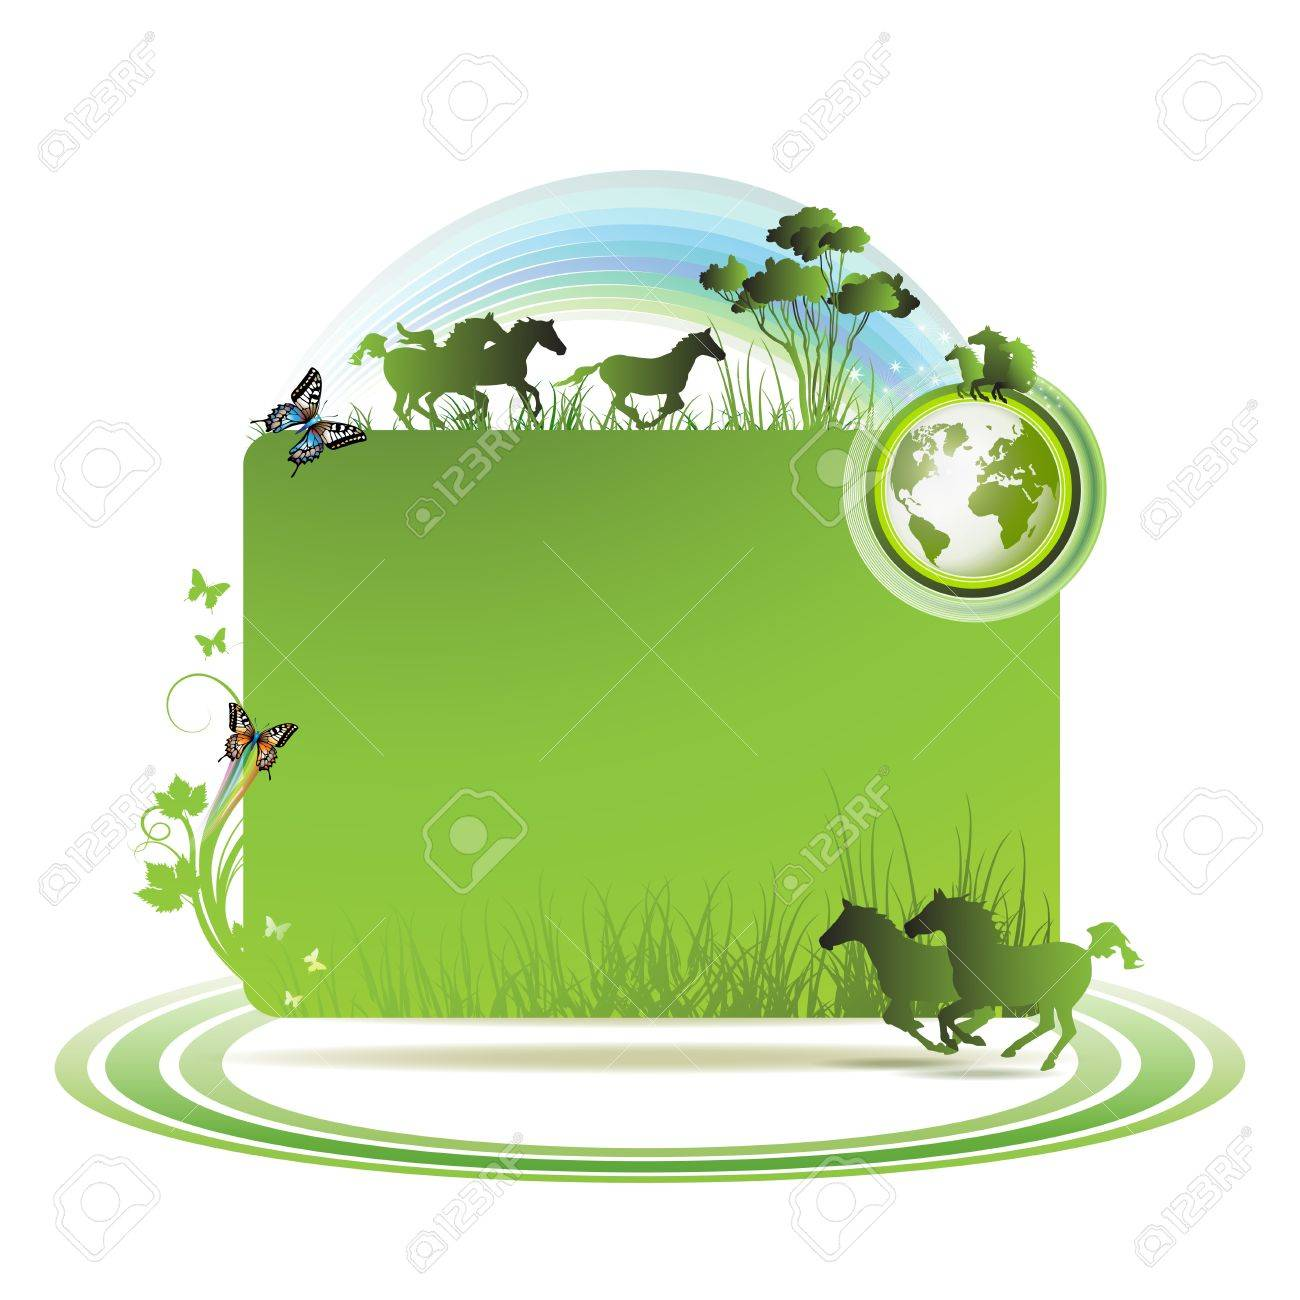 Green earth background with horses and butterflies Stock Vector - 9096065